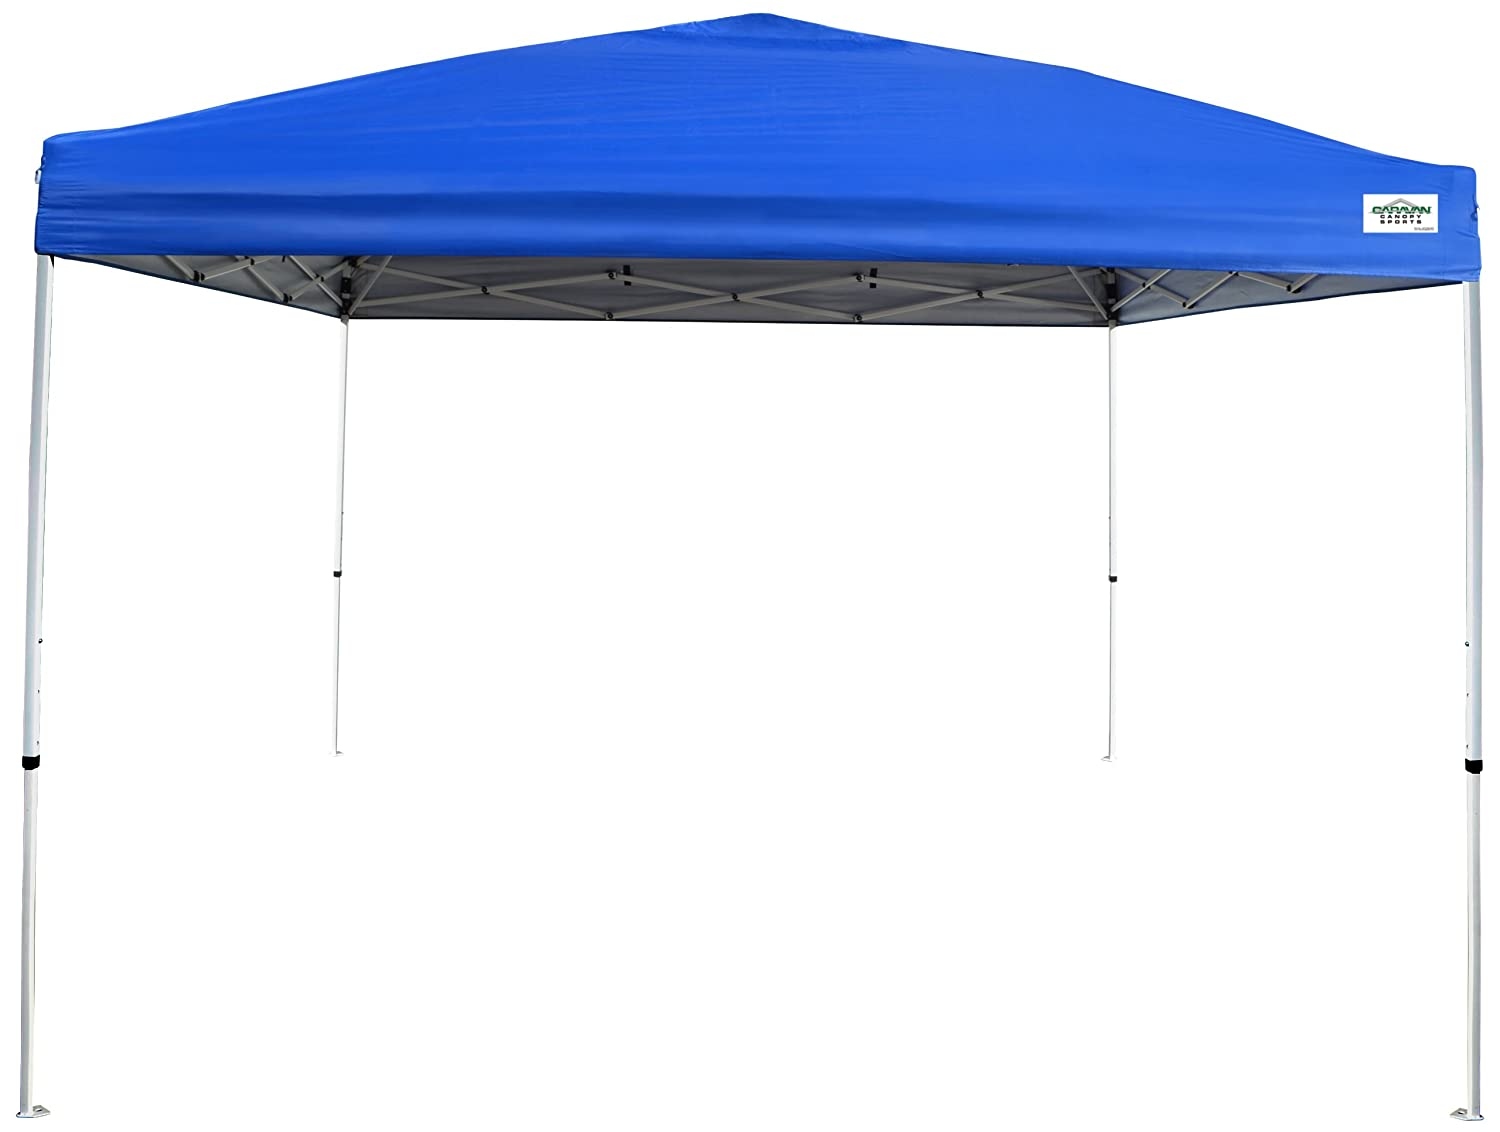 Amazon.com  Caravan Canopy V-Series 2 Pro 10 X 10 Foot Straight Leg Canopy Kit Blue  Garden u0026 Outdoor  sc 1 st  Amazon.com & Amazon.com : Caravan Canopy V-Series 2 Pro 10 X 10 Foot Straight ...